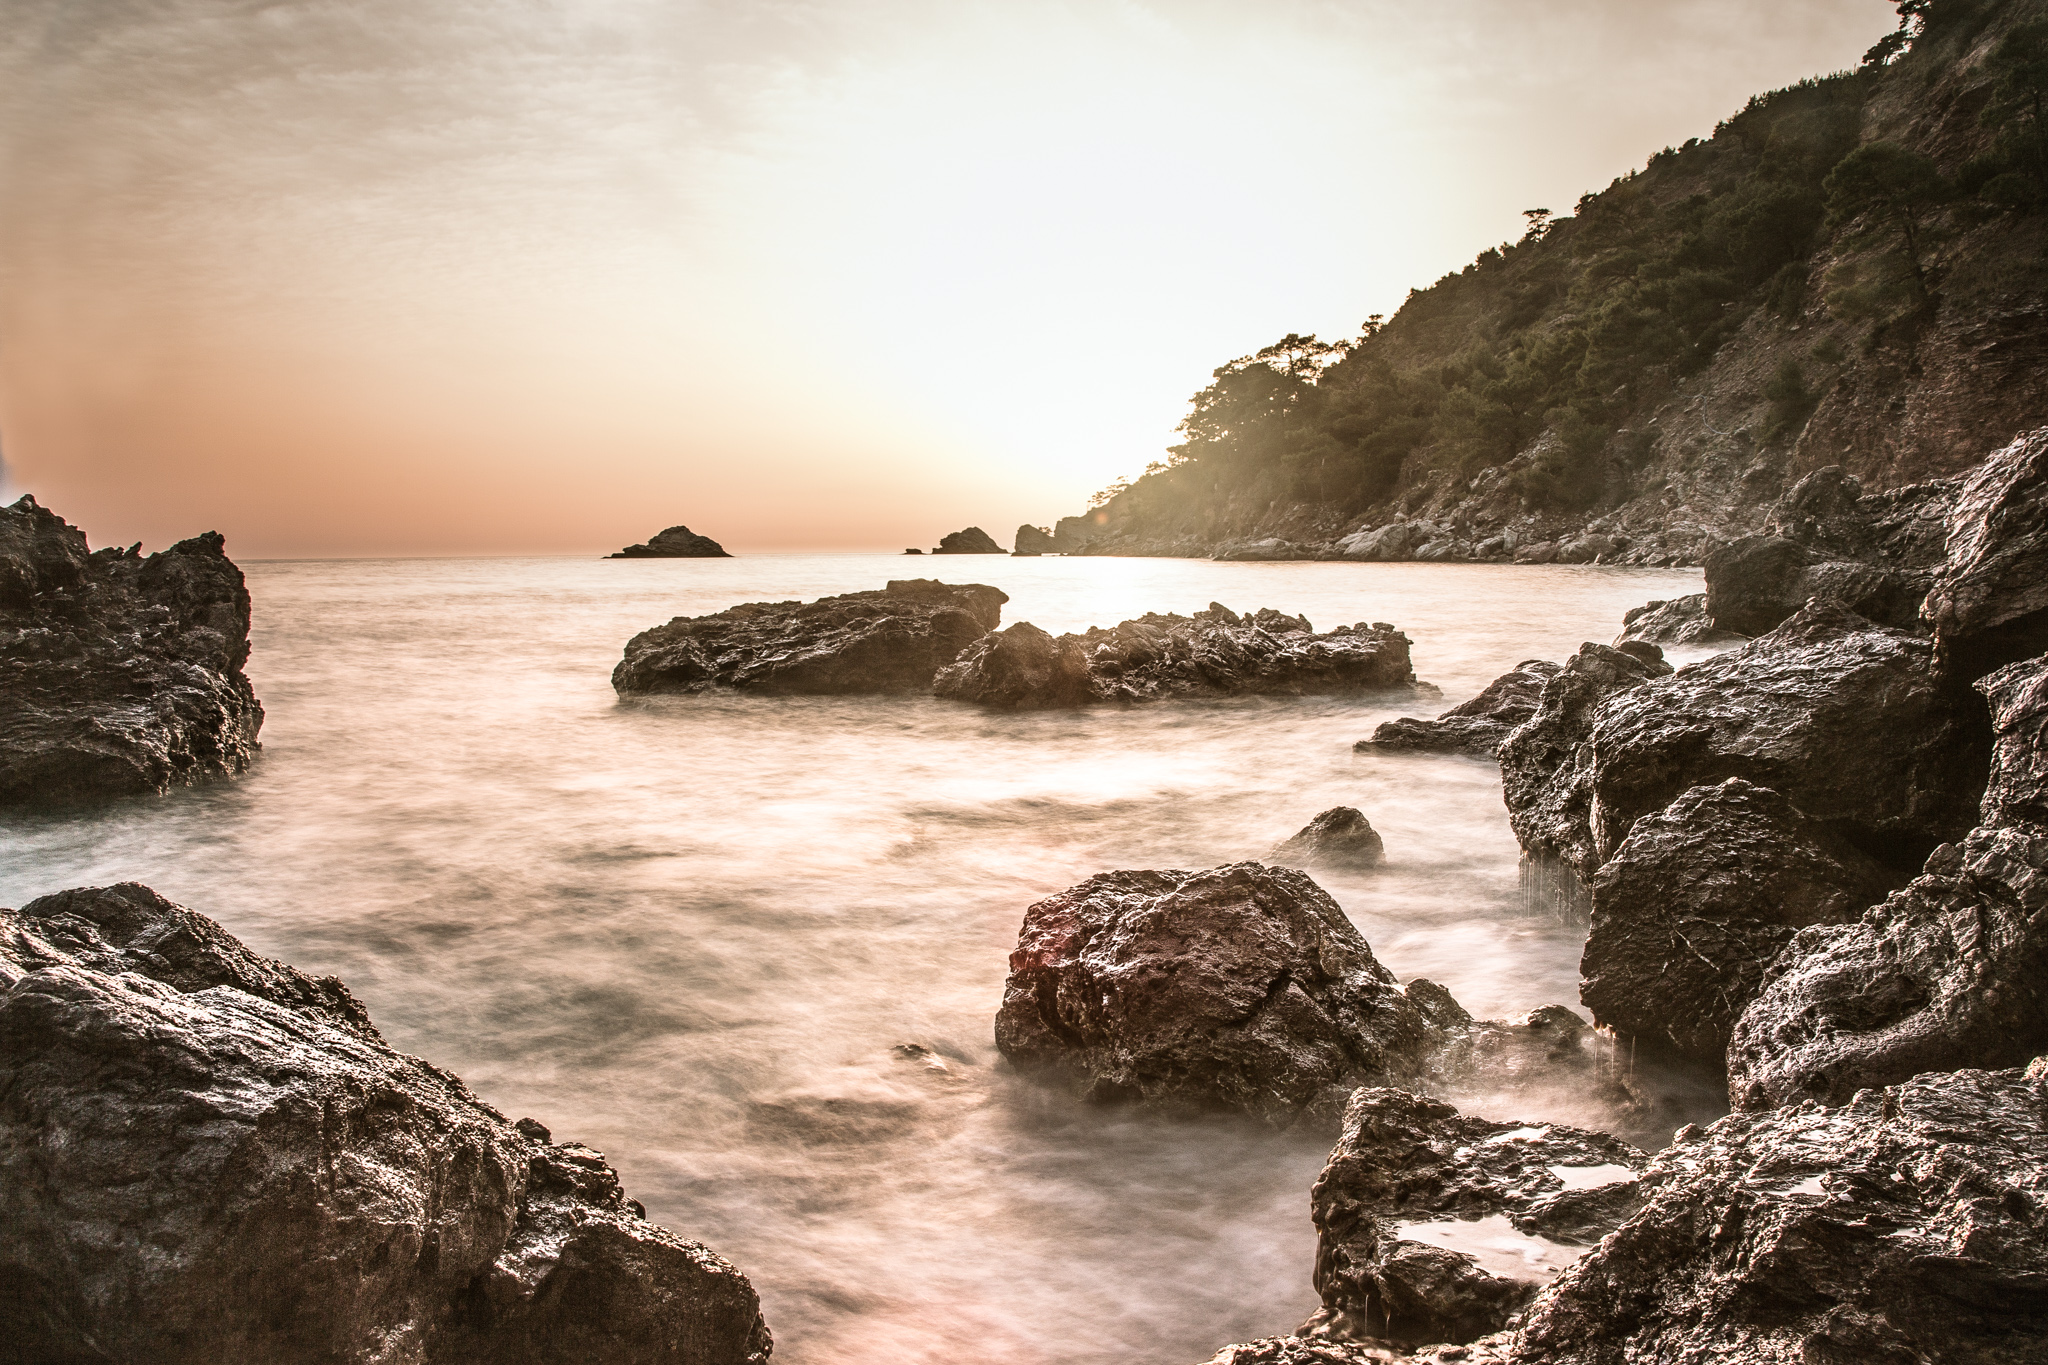 lycian-way_kabak-3360-sunset-on-rocks.jpg